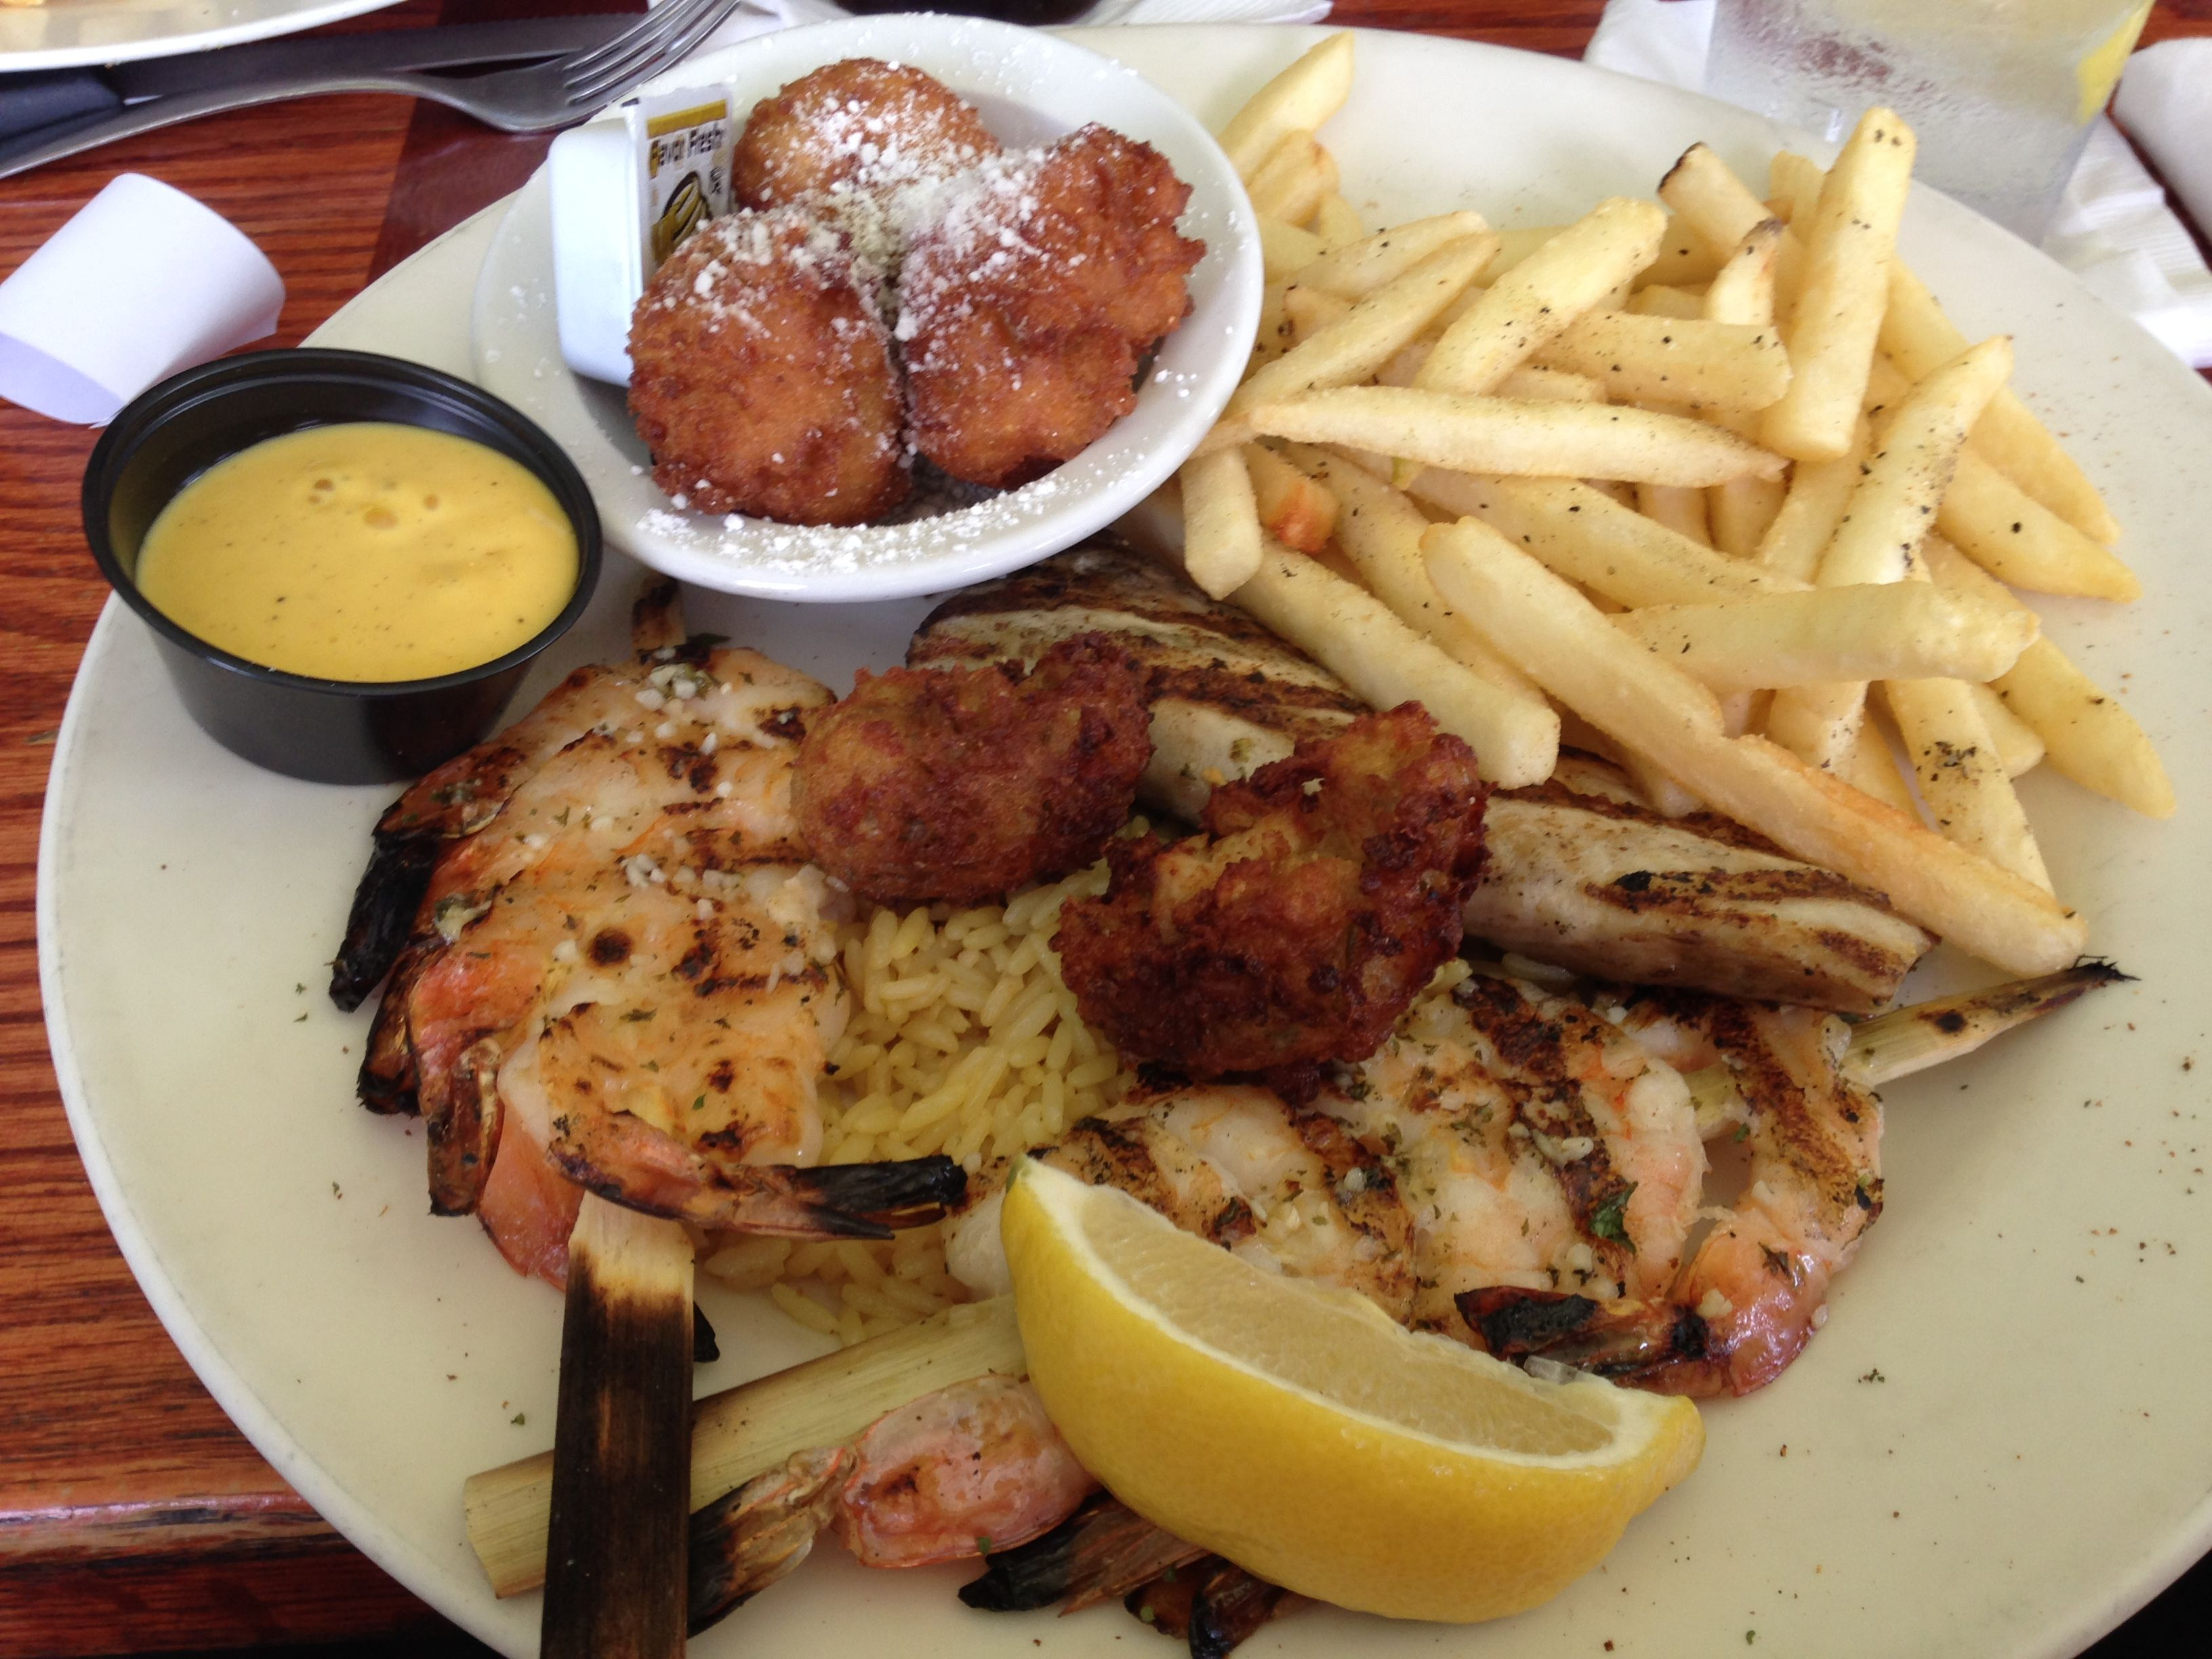 Key West Caribbean Mahi From The Port Steak And Seafood Restaurant In Haines City